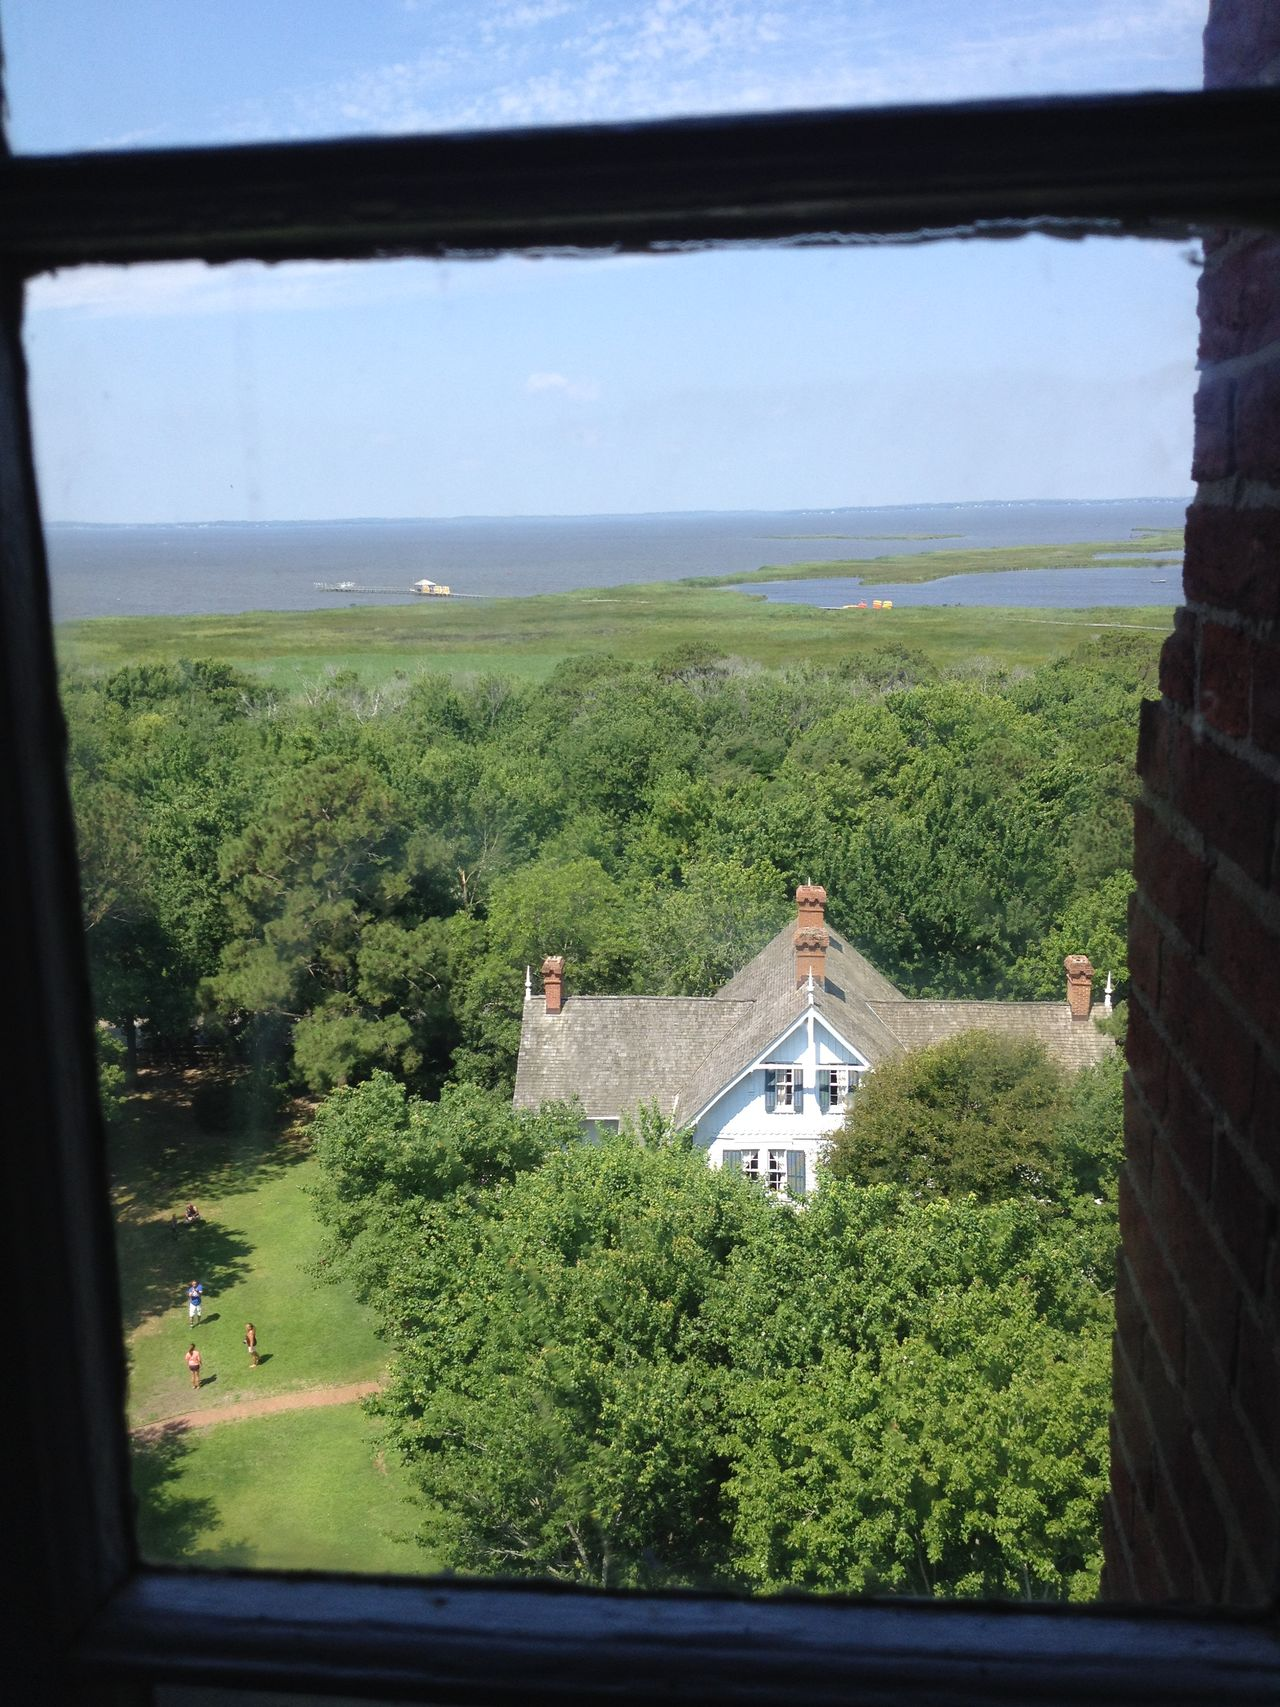 Caretaker House Currituck Beach Lighthouse Grass Sky Soundside Tree View From The Top Window View